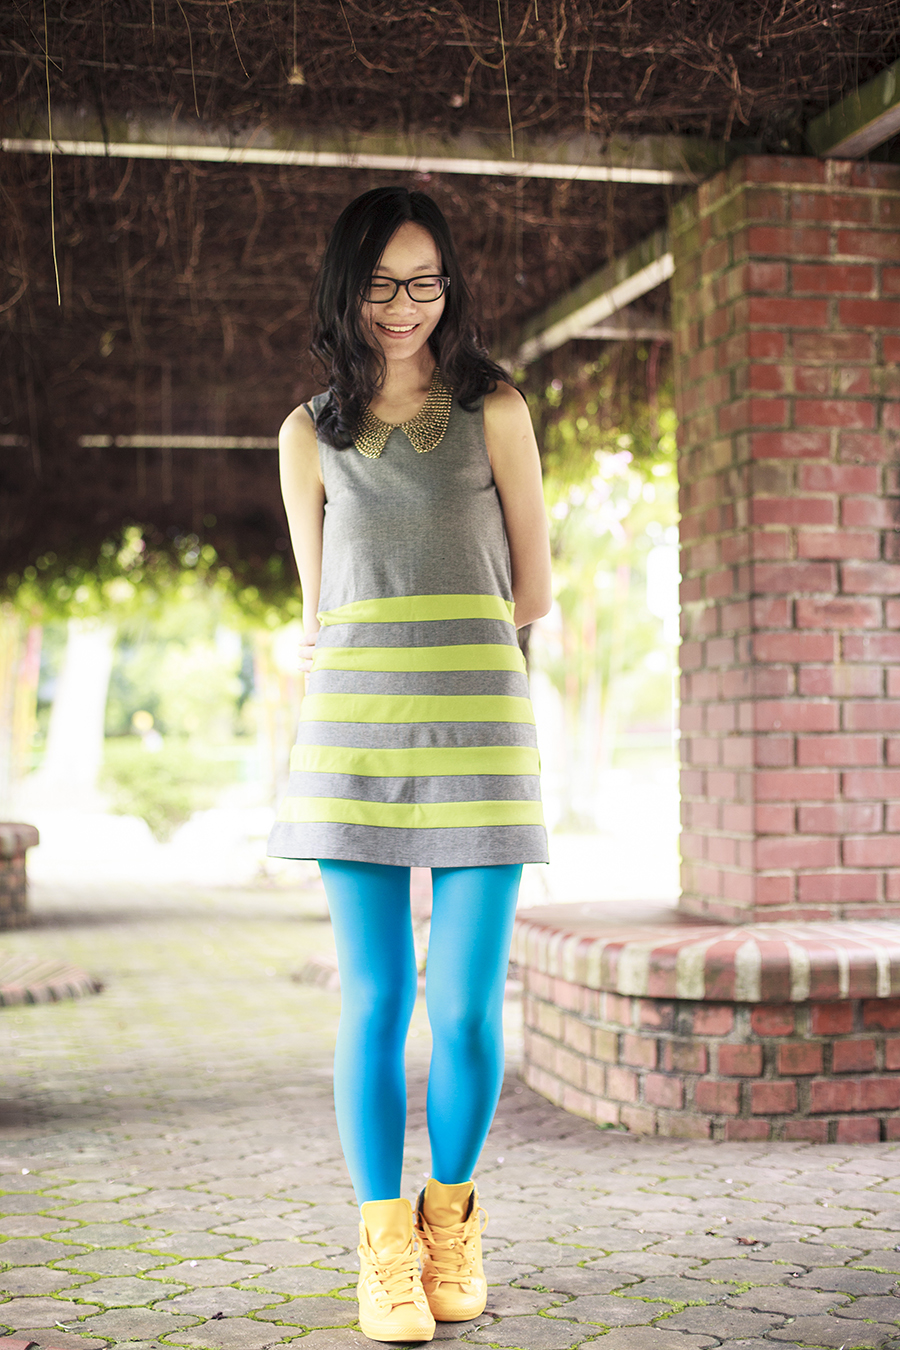 Outfit: green striped grey dress by bYSI, turquoise tights from online,yellow rubber coated all star chuck taylor sneakers from Converse c/o Shopbop, black frame glasses from Gap, gold chain collar necklace from Forever 21.